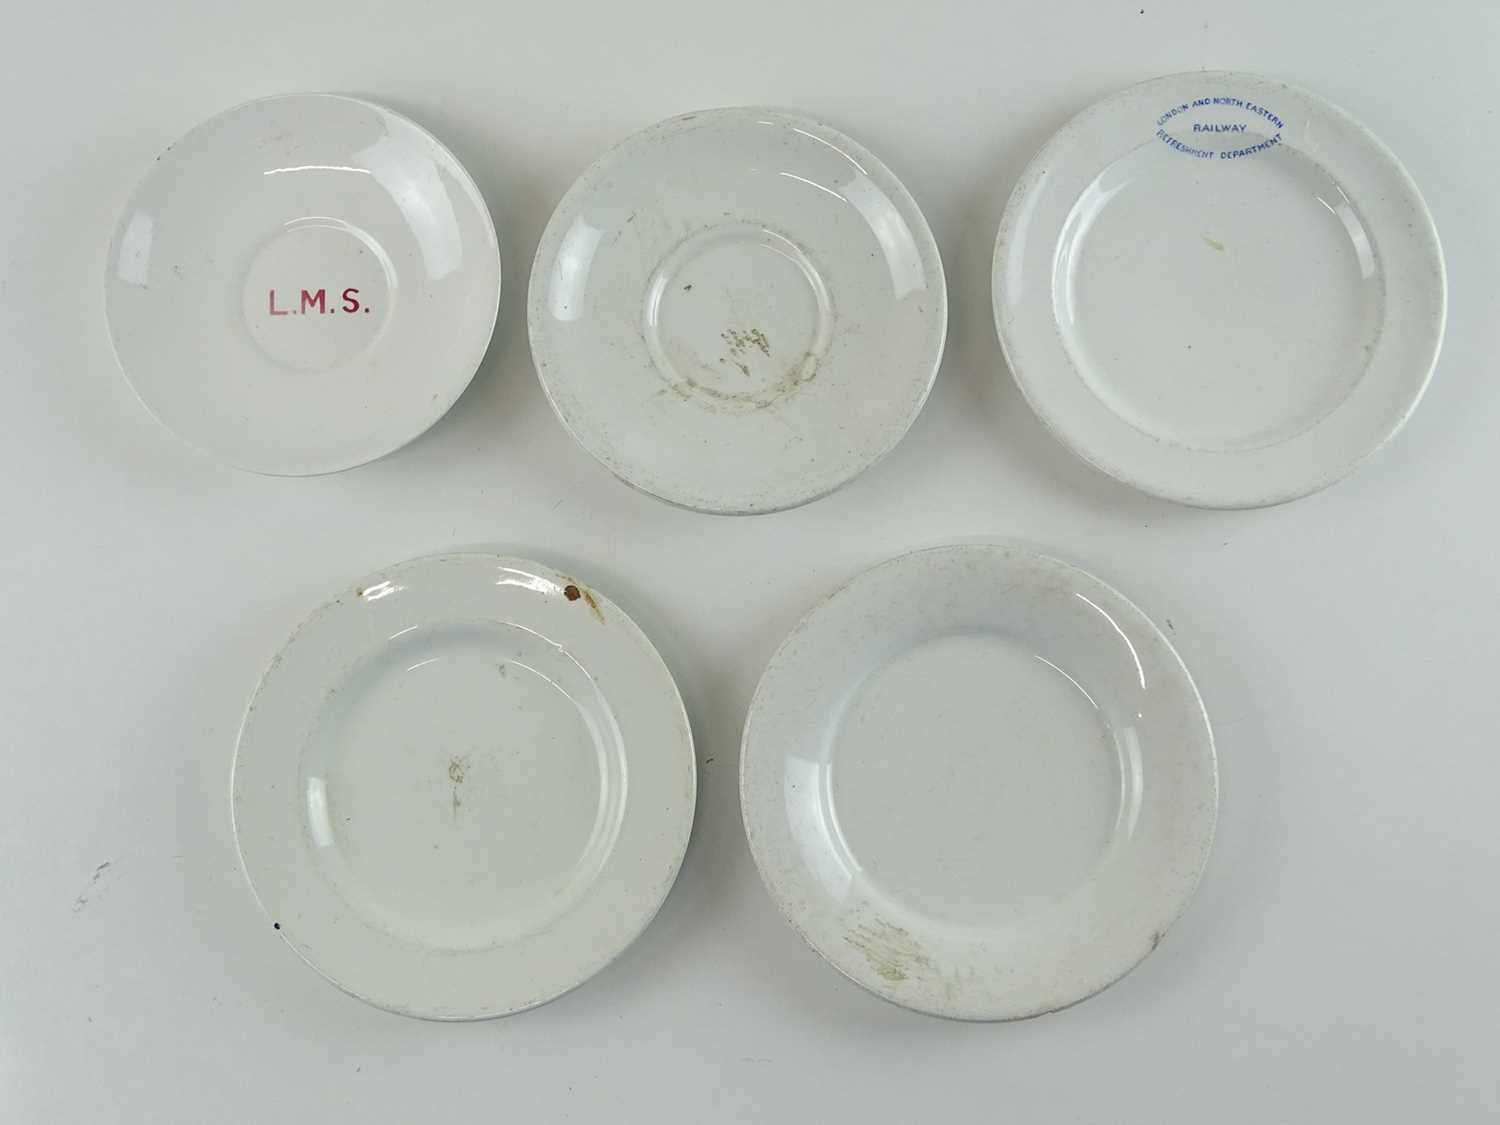 A selection of ceramic railways crockery items for LMS and LNER comprising saucers and plates (5) - Image 2 of 2